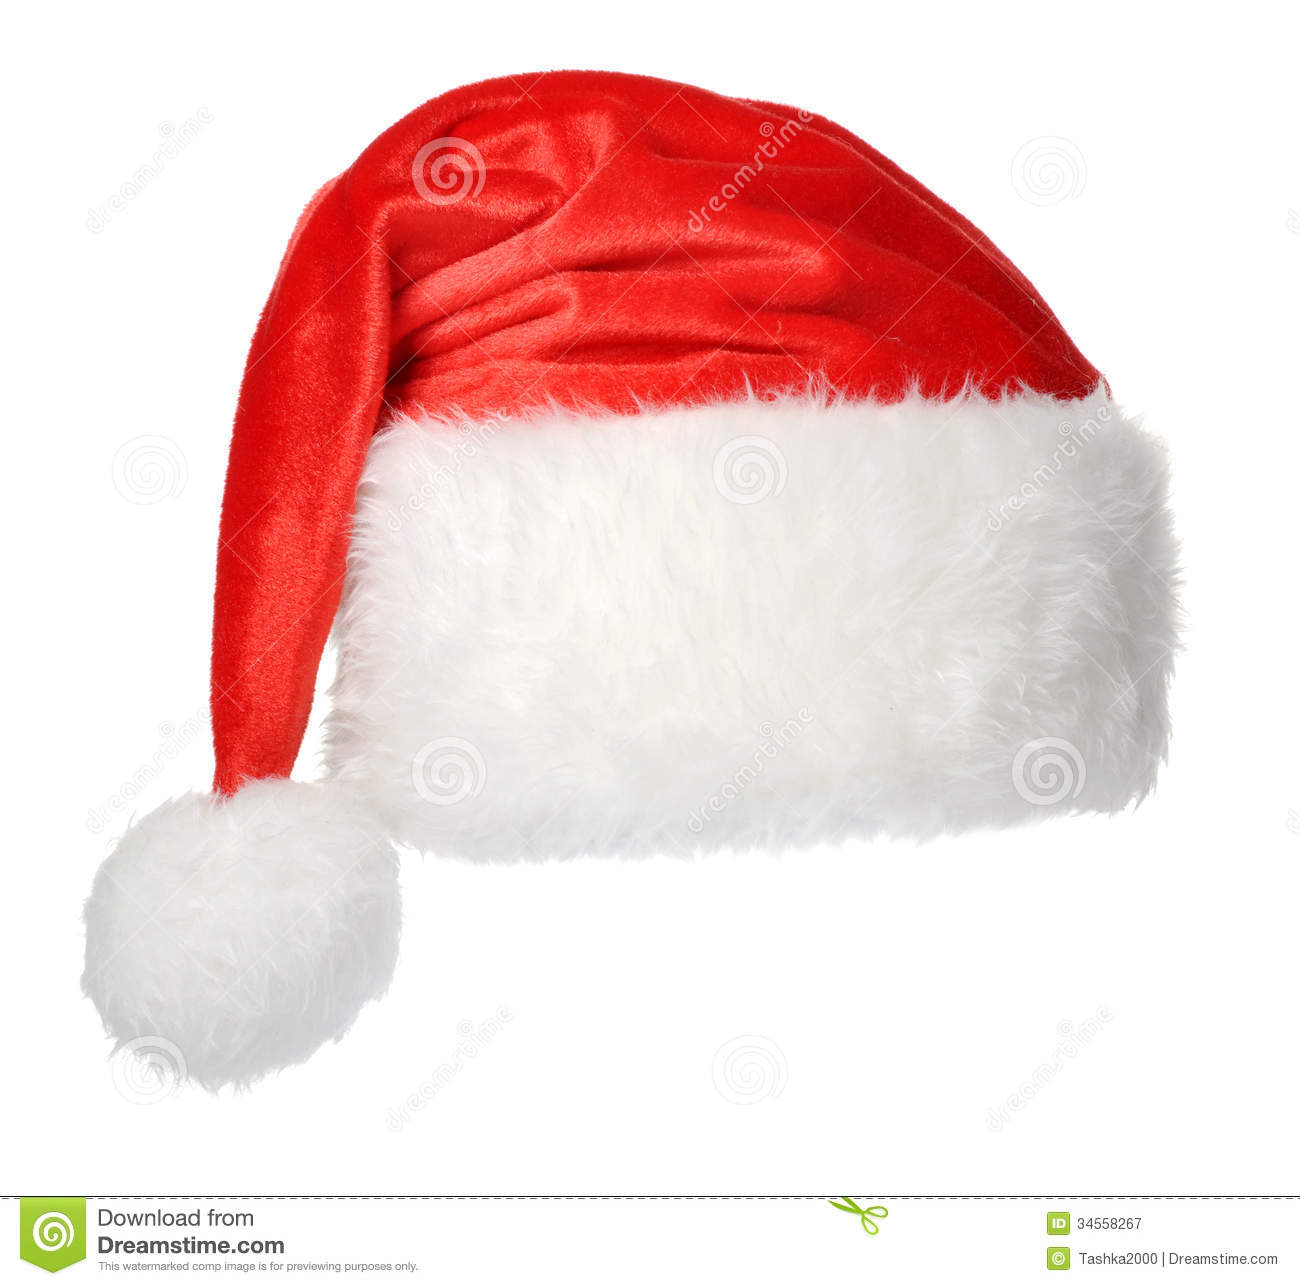 Santa Claus hat stock image. Image of december 3afd2073fa5f